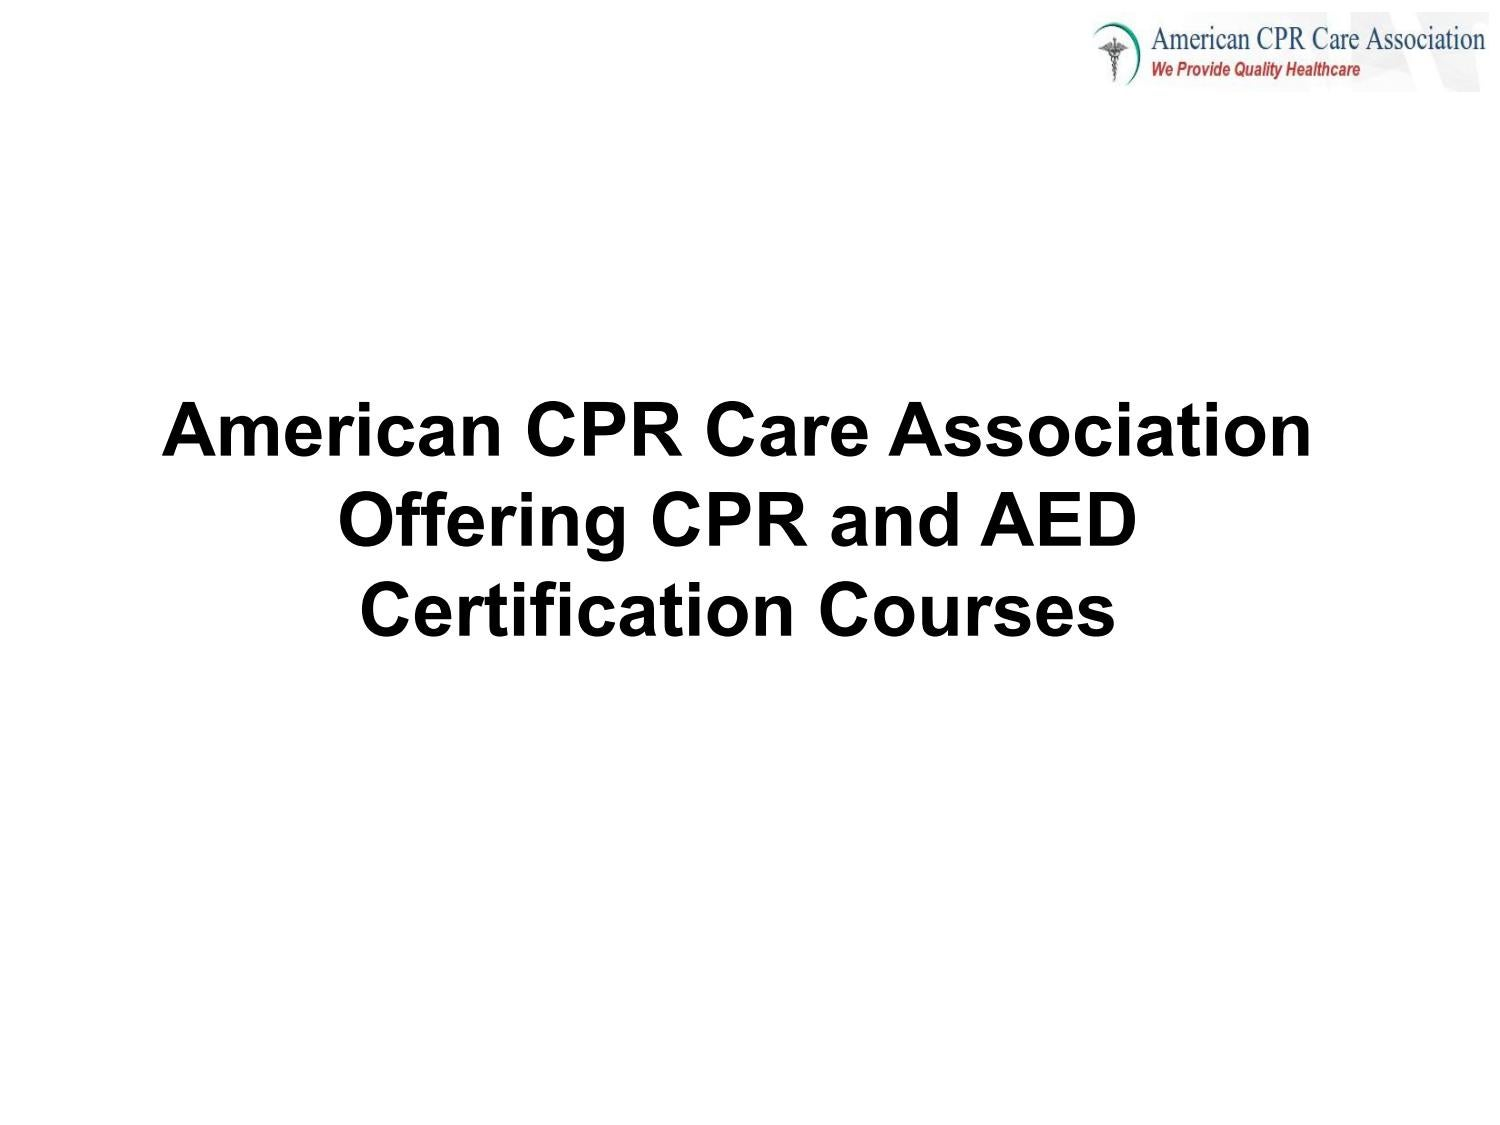 American Cpr Care Association Offering Cpr And Aed Certification